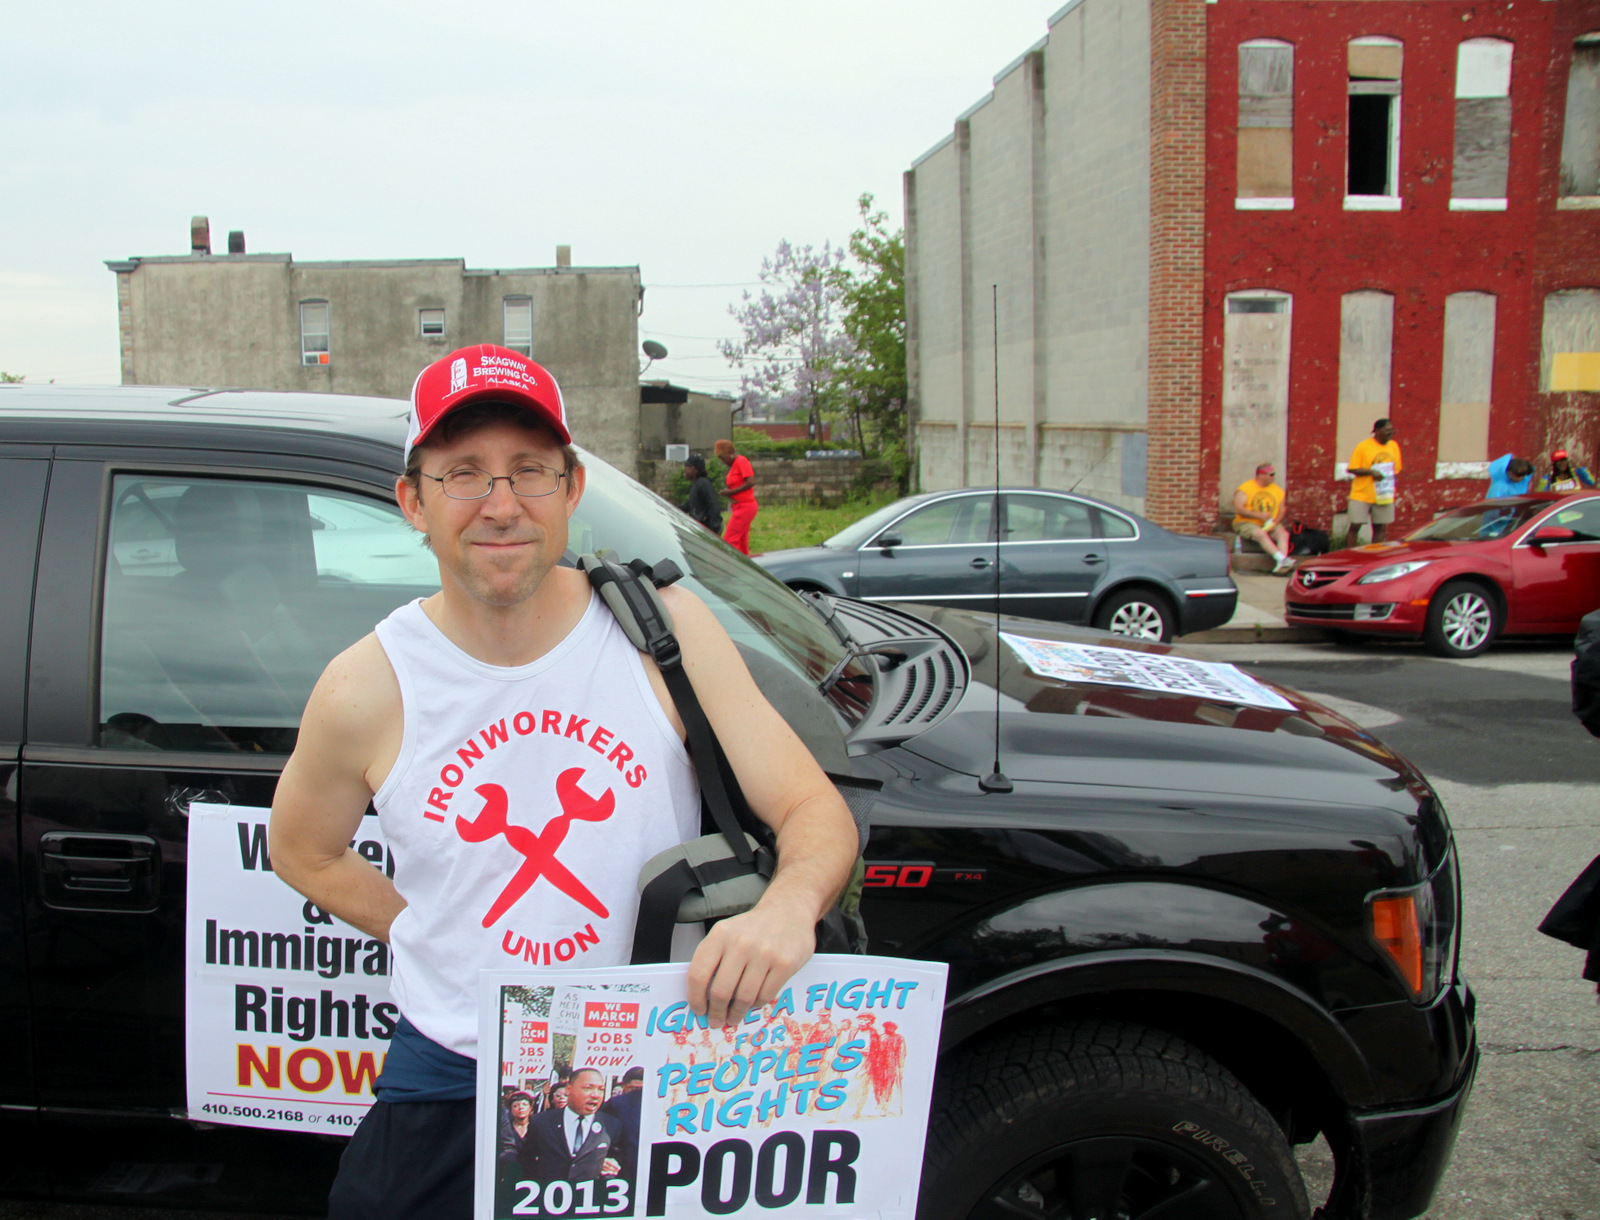 Jayson Bozek, a Baltimore area public defender, said he was walking with his clients in mind. (Photo by Louie Krauss)